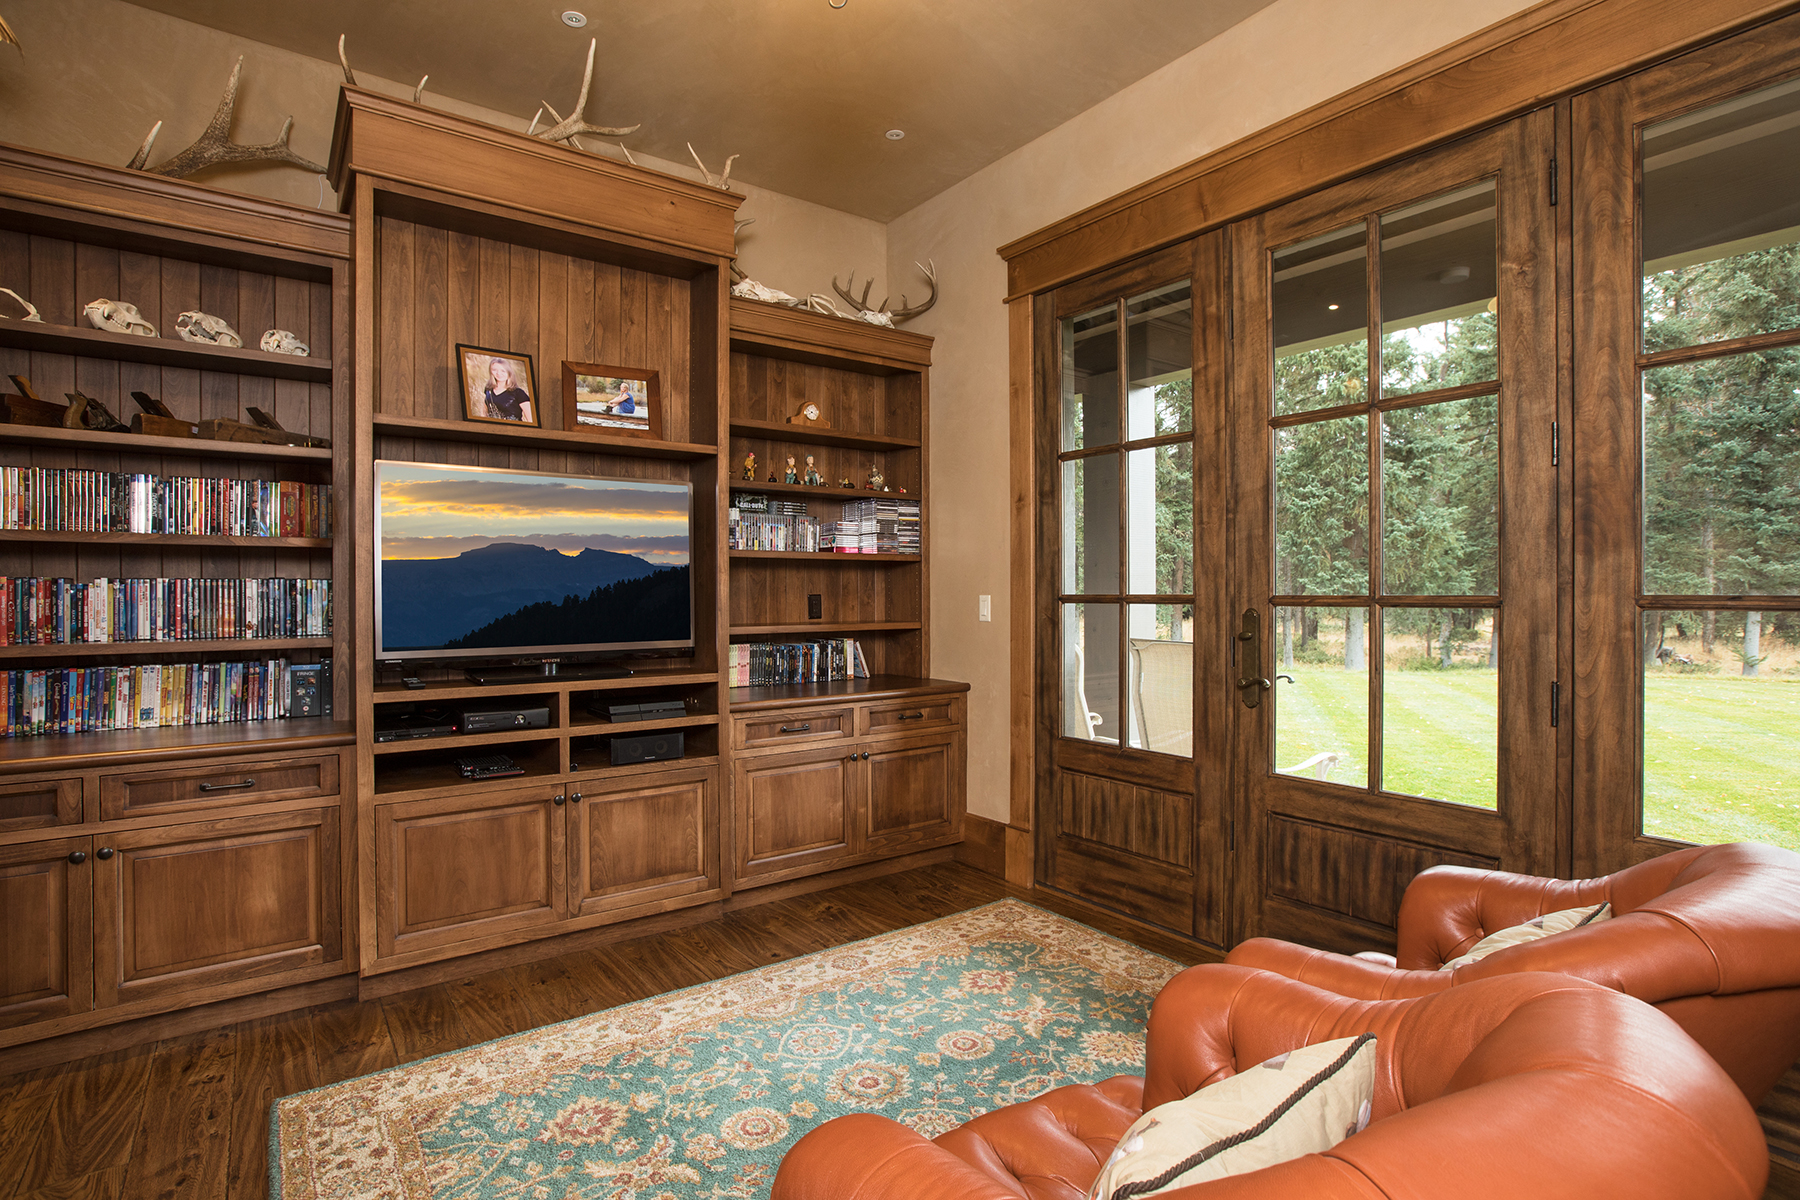 Additional photo for property listing at 7555 N Bar B Bar River Road Jackson, Wyoming 83001 United States